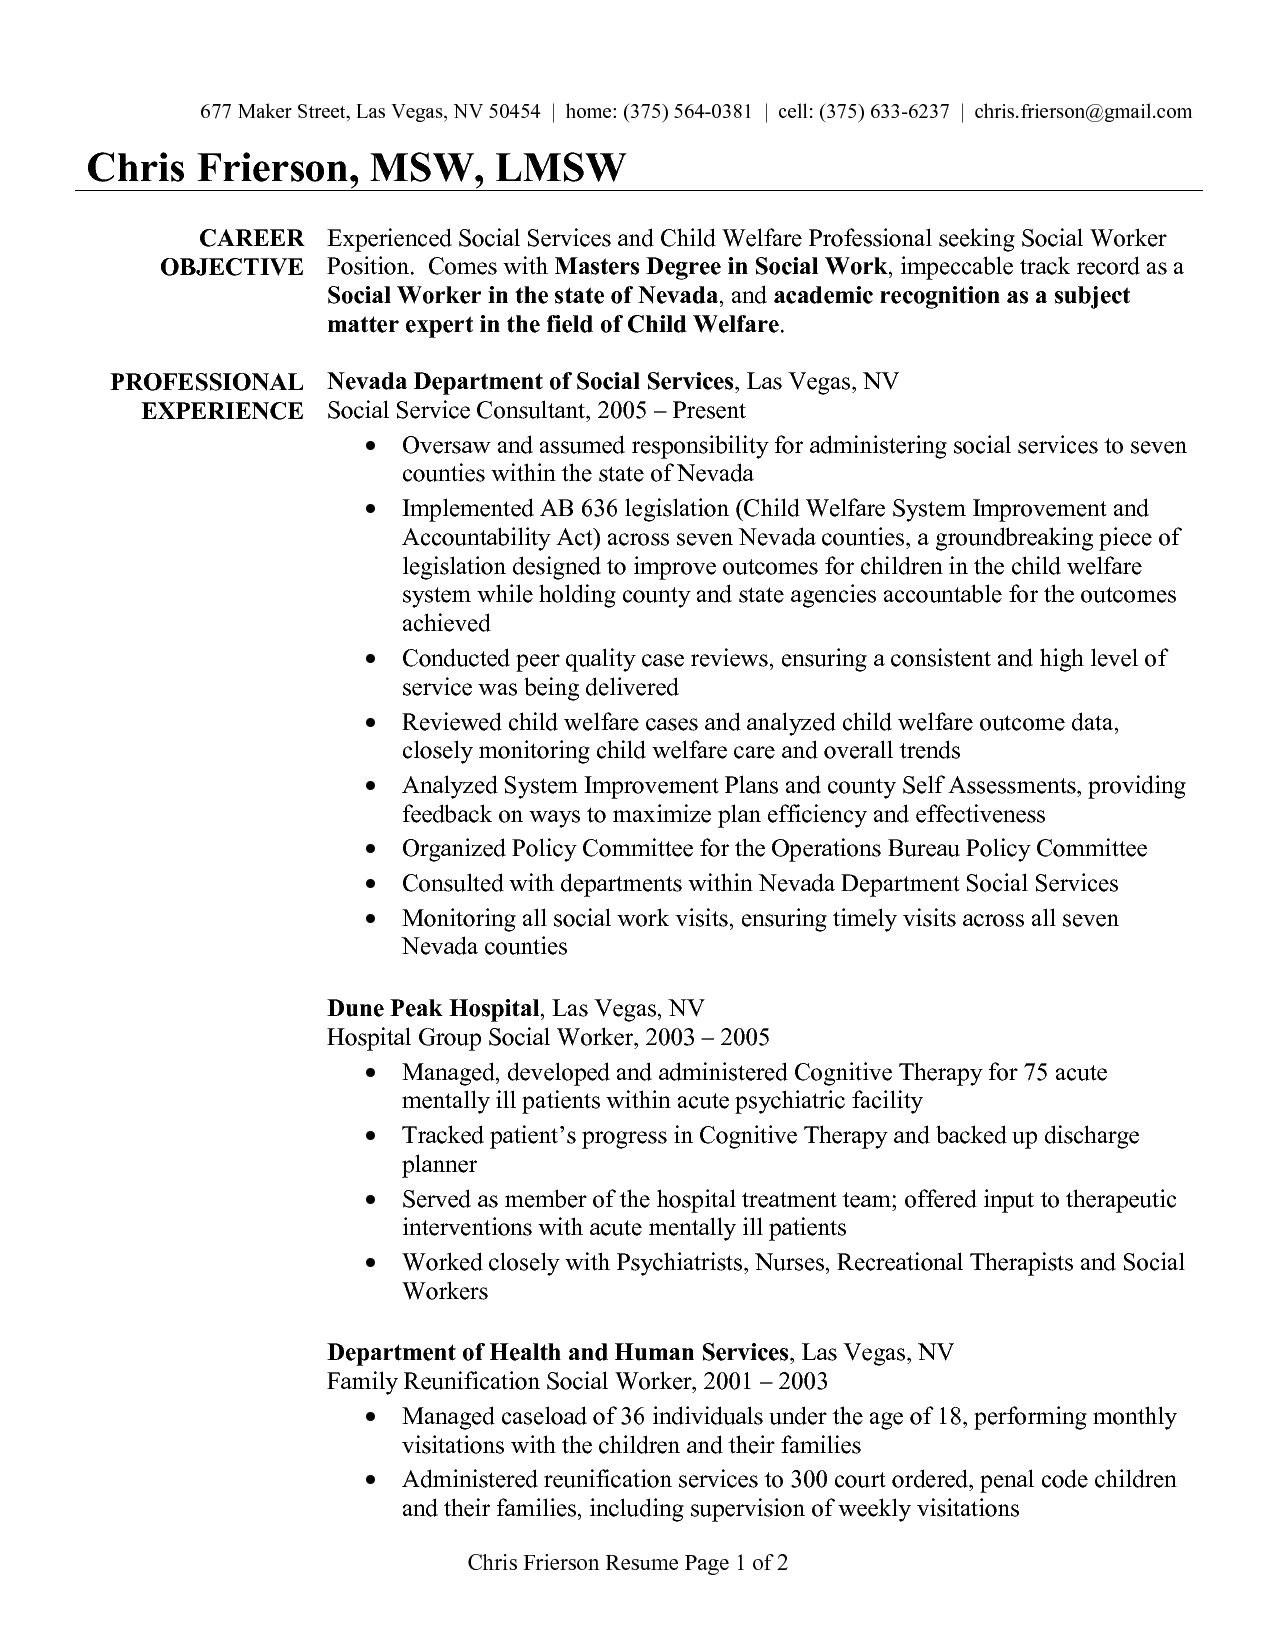 Social Work Resume Examples | Social Worker Resume Sample  Hospital Resume Examples